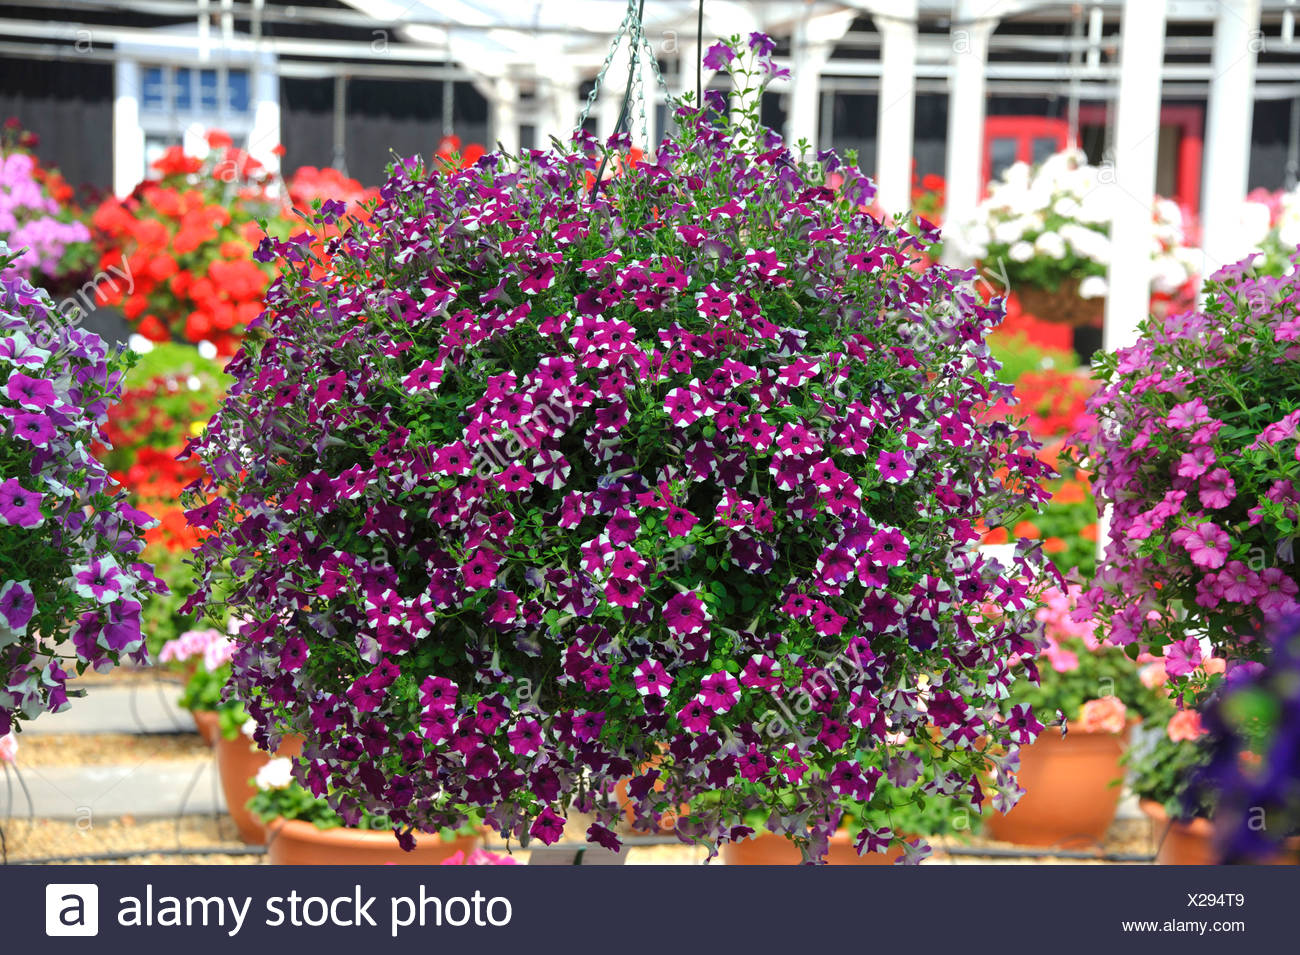 garden petunia (Petunia 'Purple Star', Petunia Purple Star), Cultivar Purple Star, blooming - Stock Image